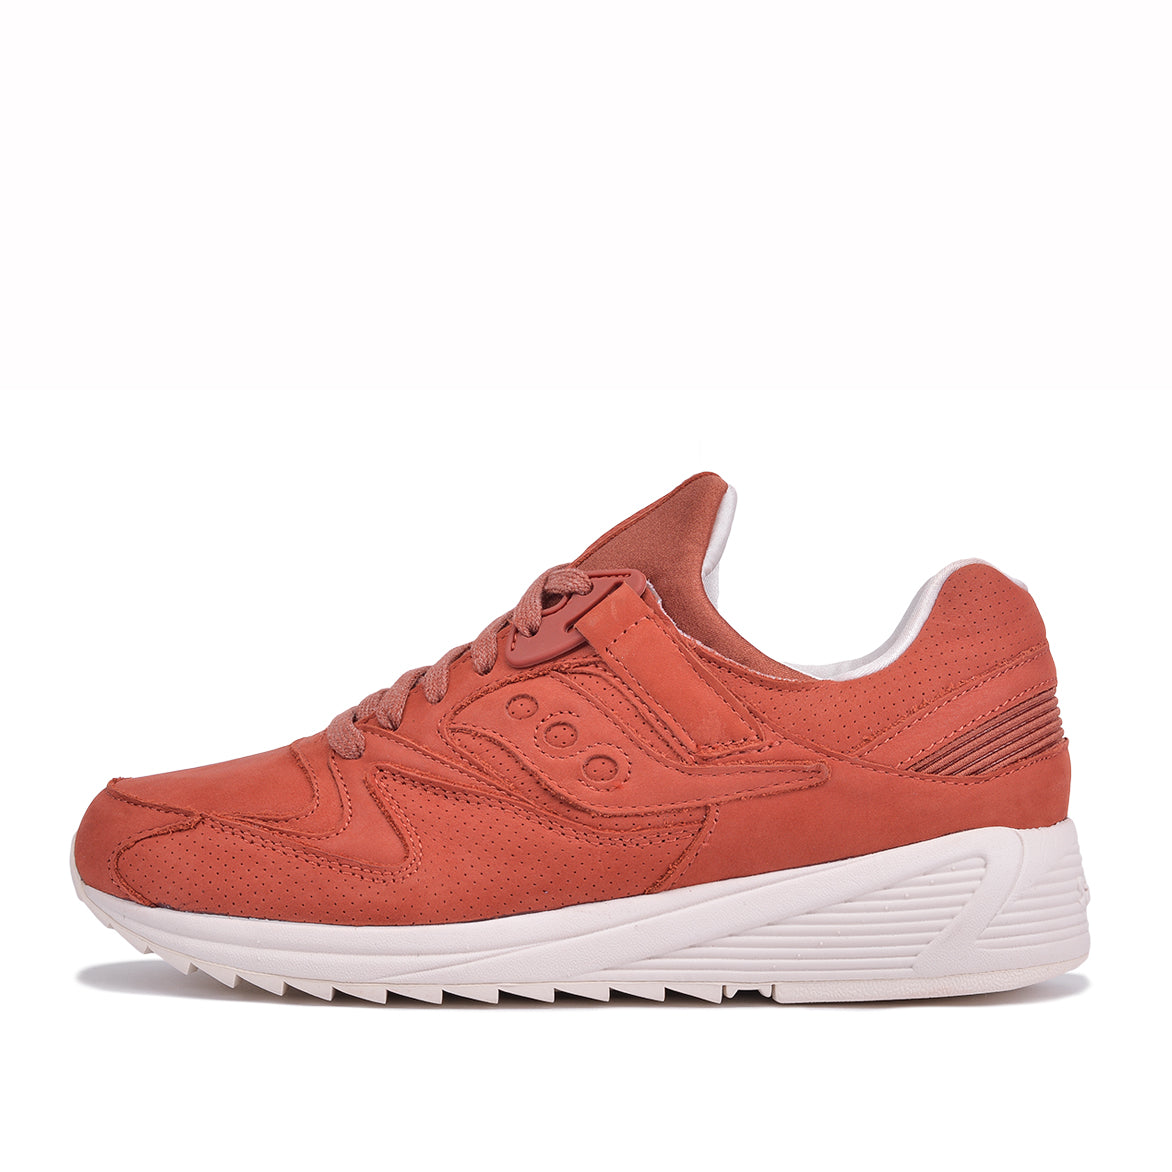 "GRID 8500 HT ""BURNISH"" - RED"